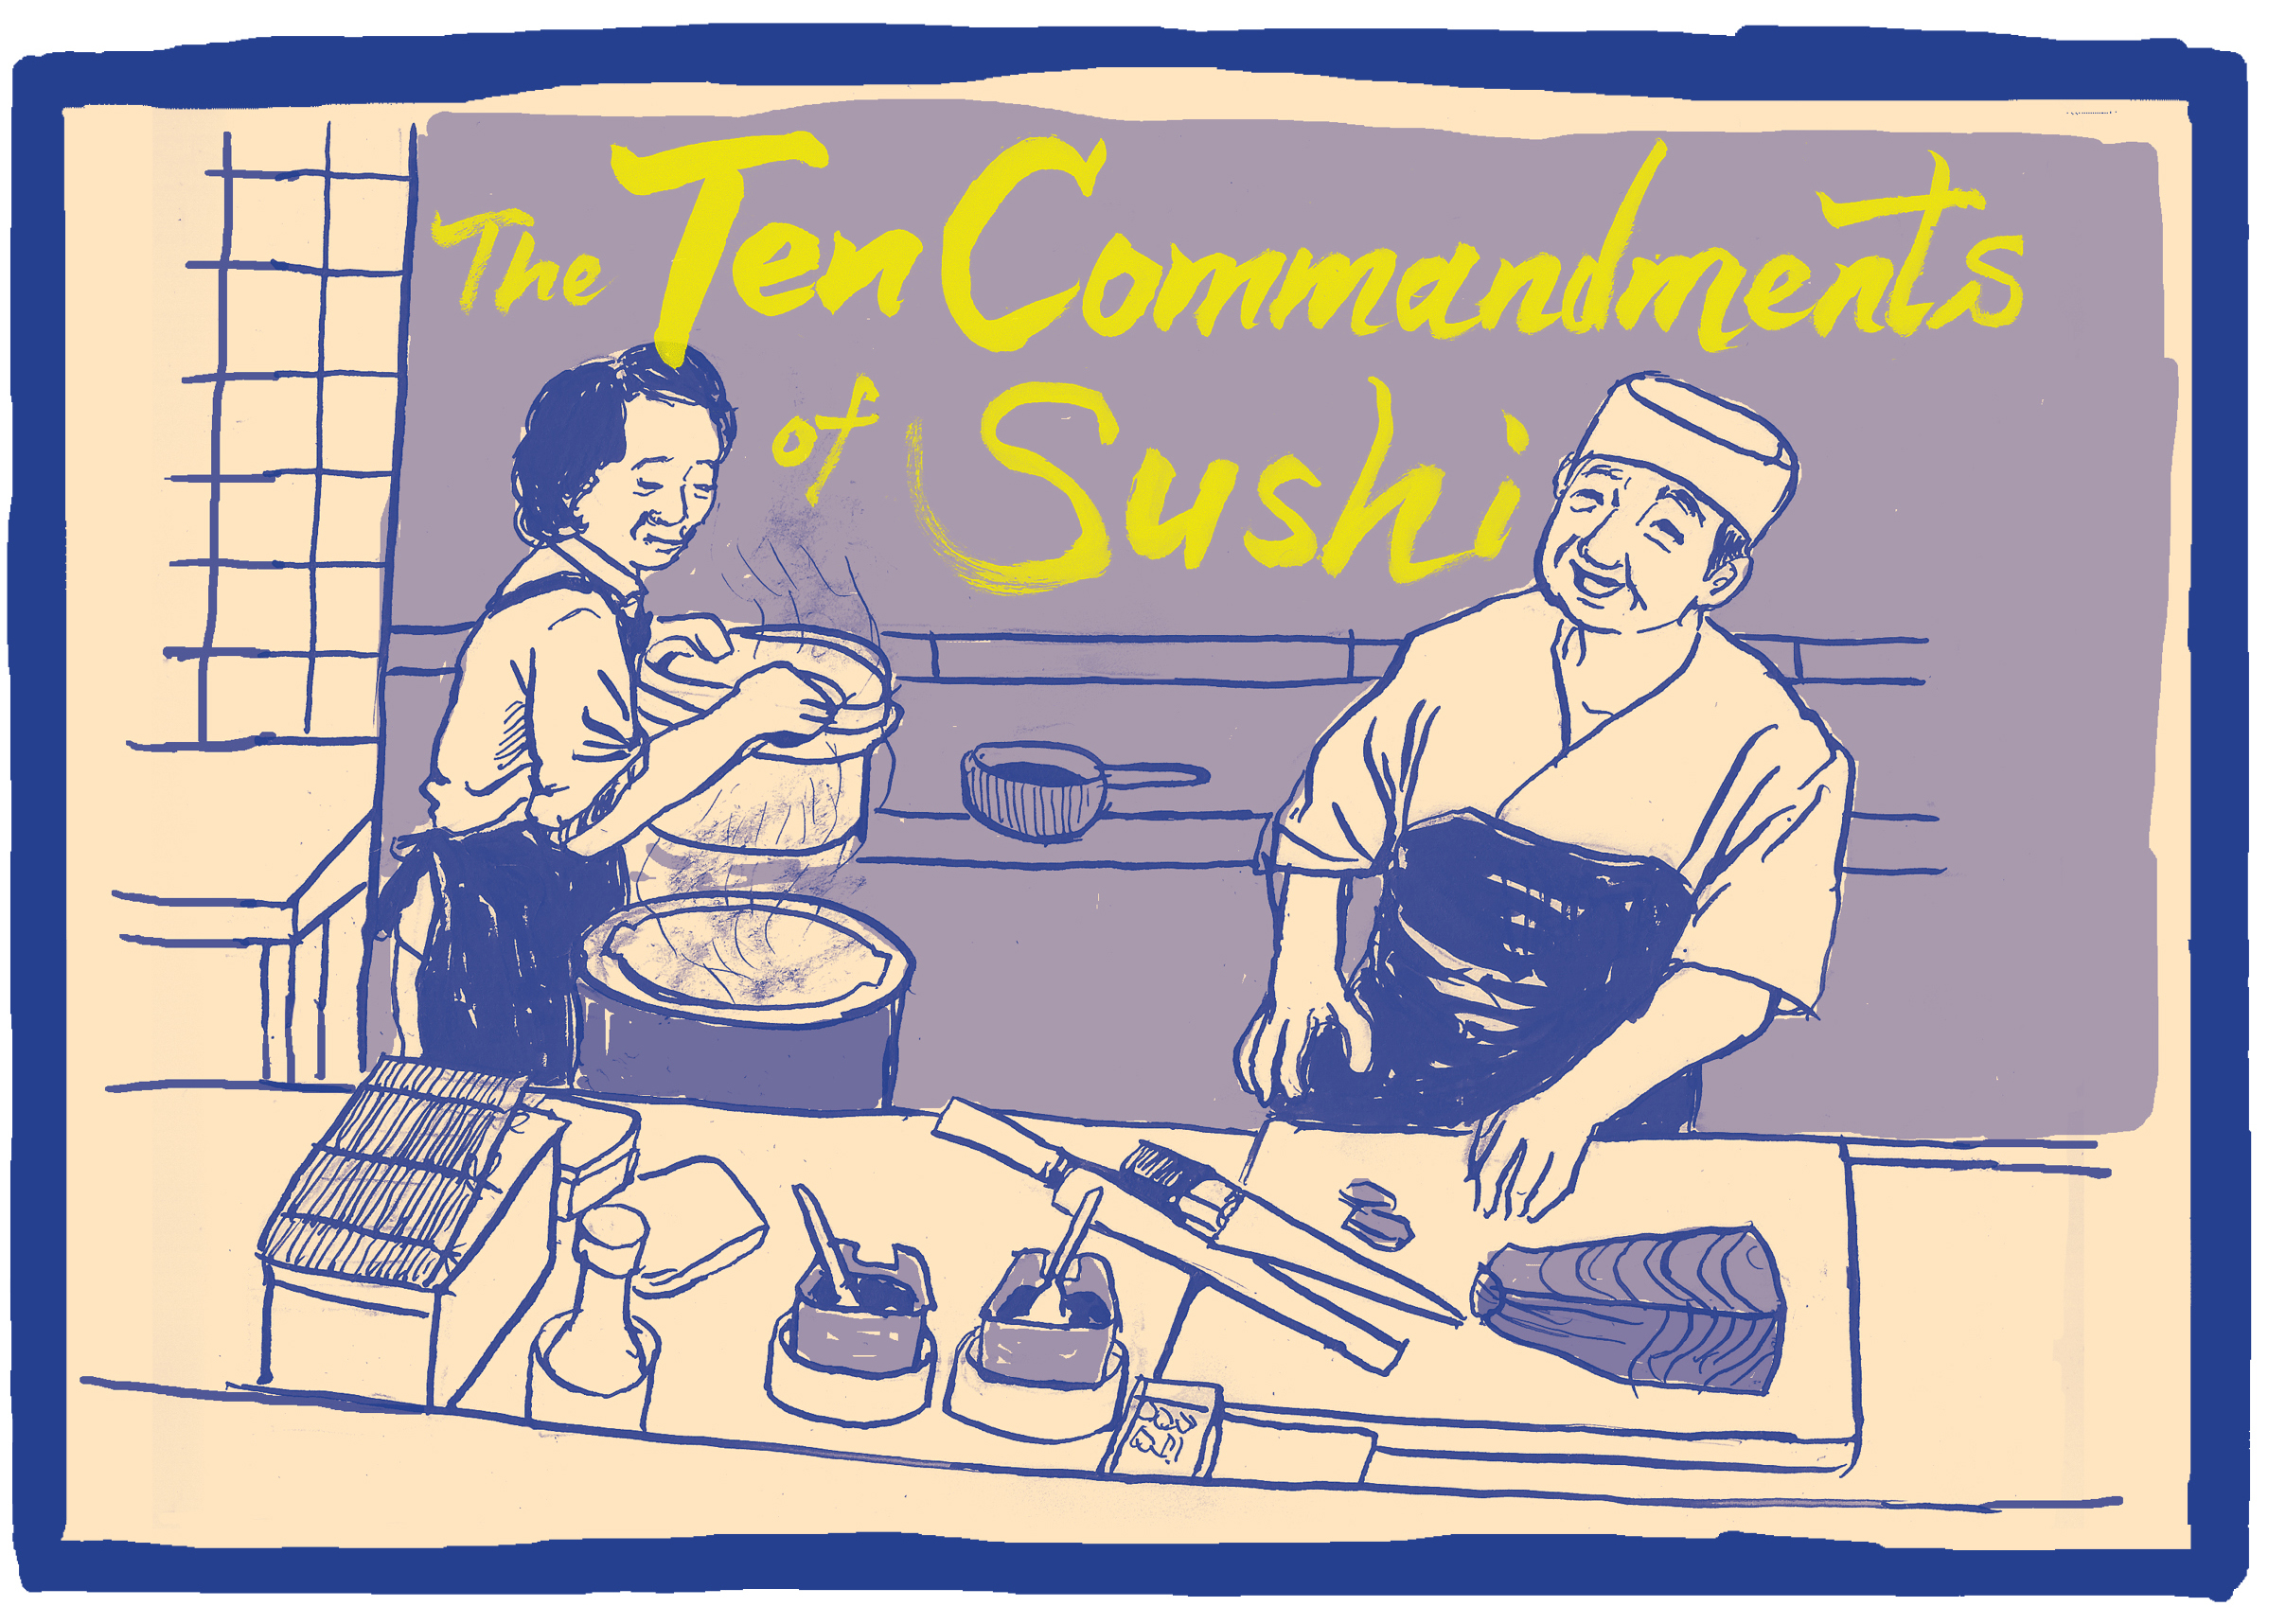 The Ten Commandments of Sushi Title